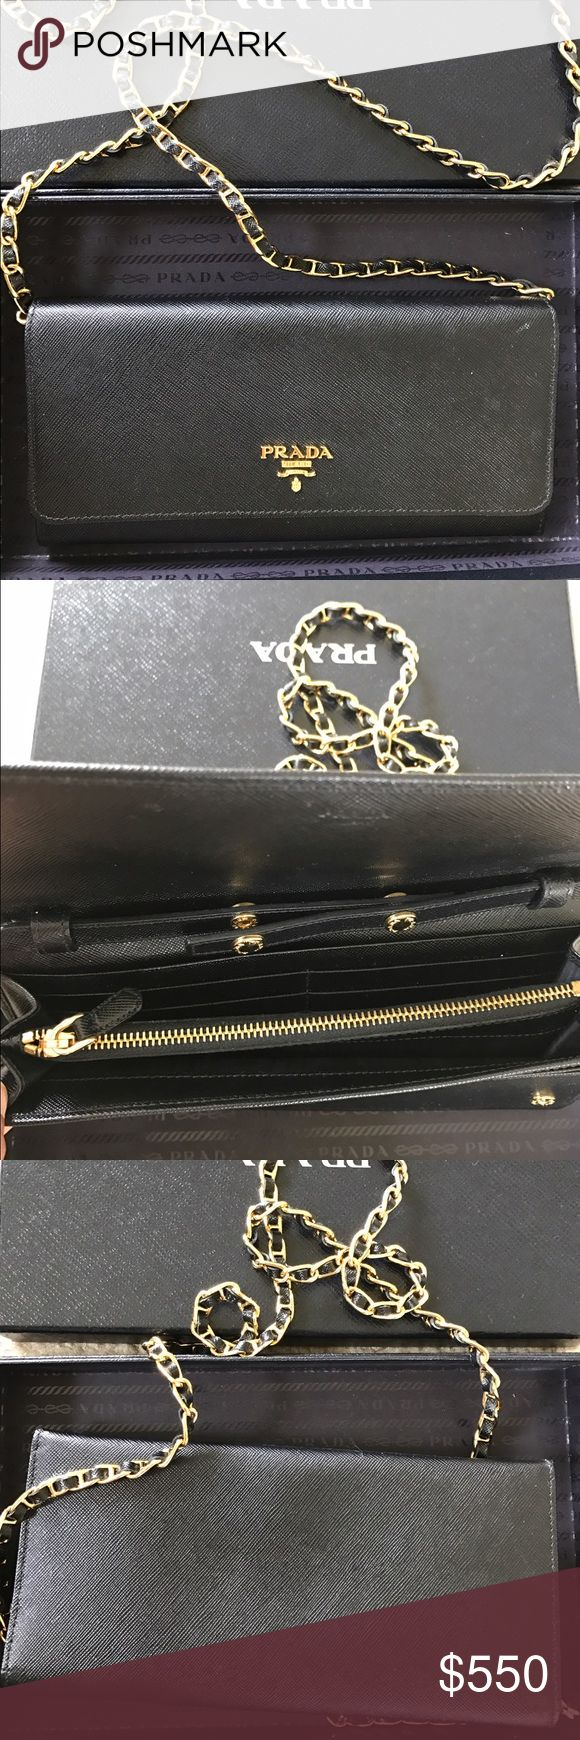 Authentic Prada clutch Bought from Neiman Marcus about 3 years ago. It was only used twice for special occasion. Prada Bags Clutches & Wristlets